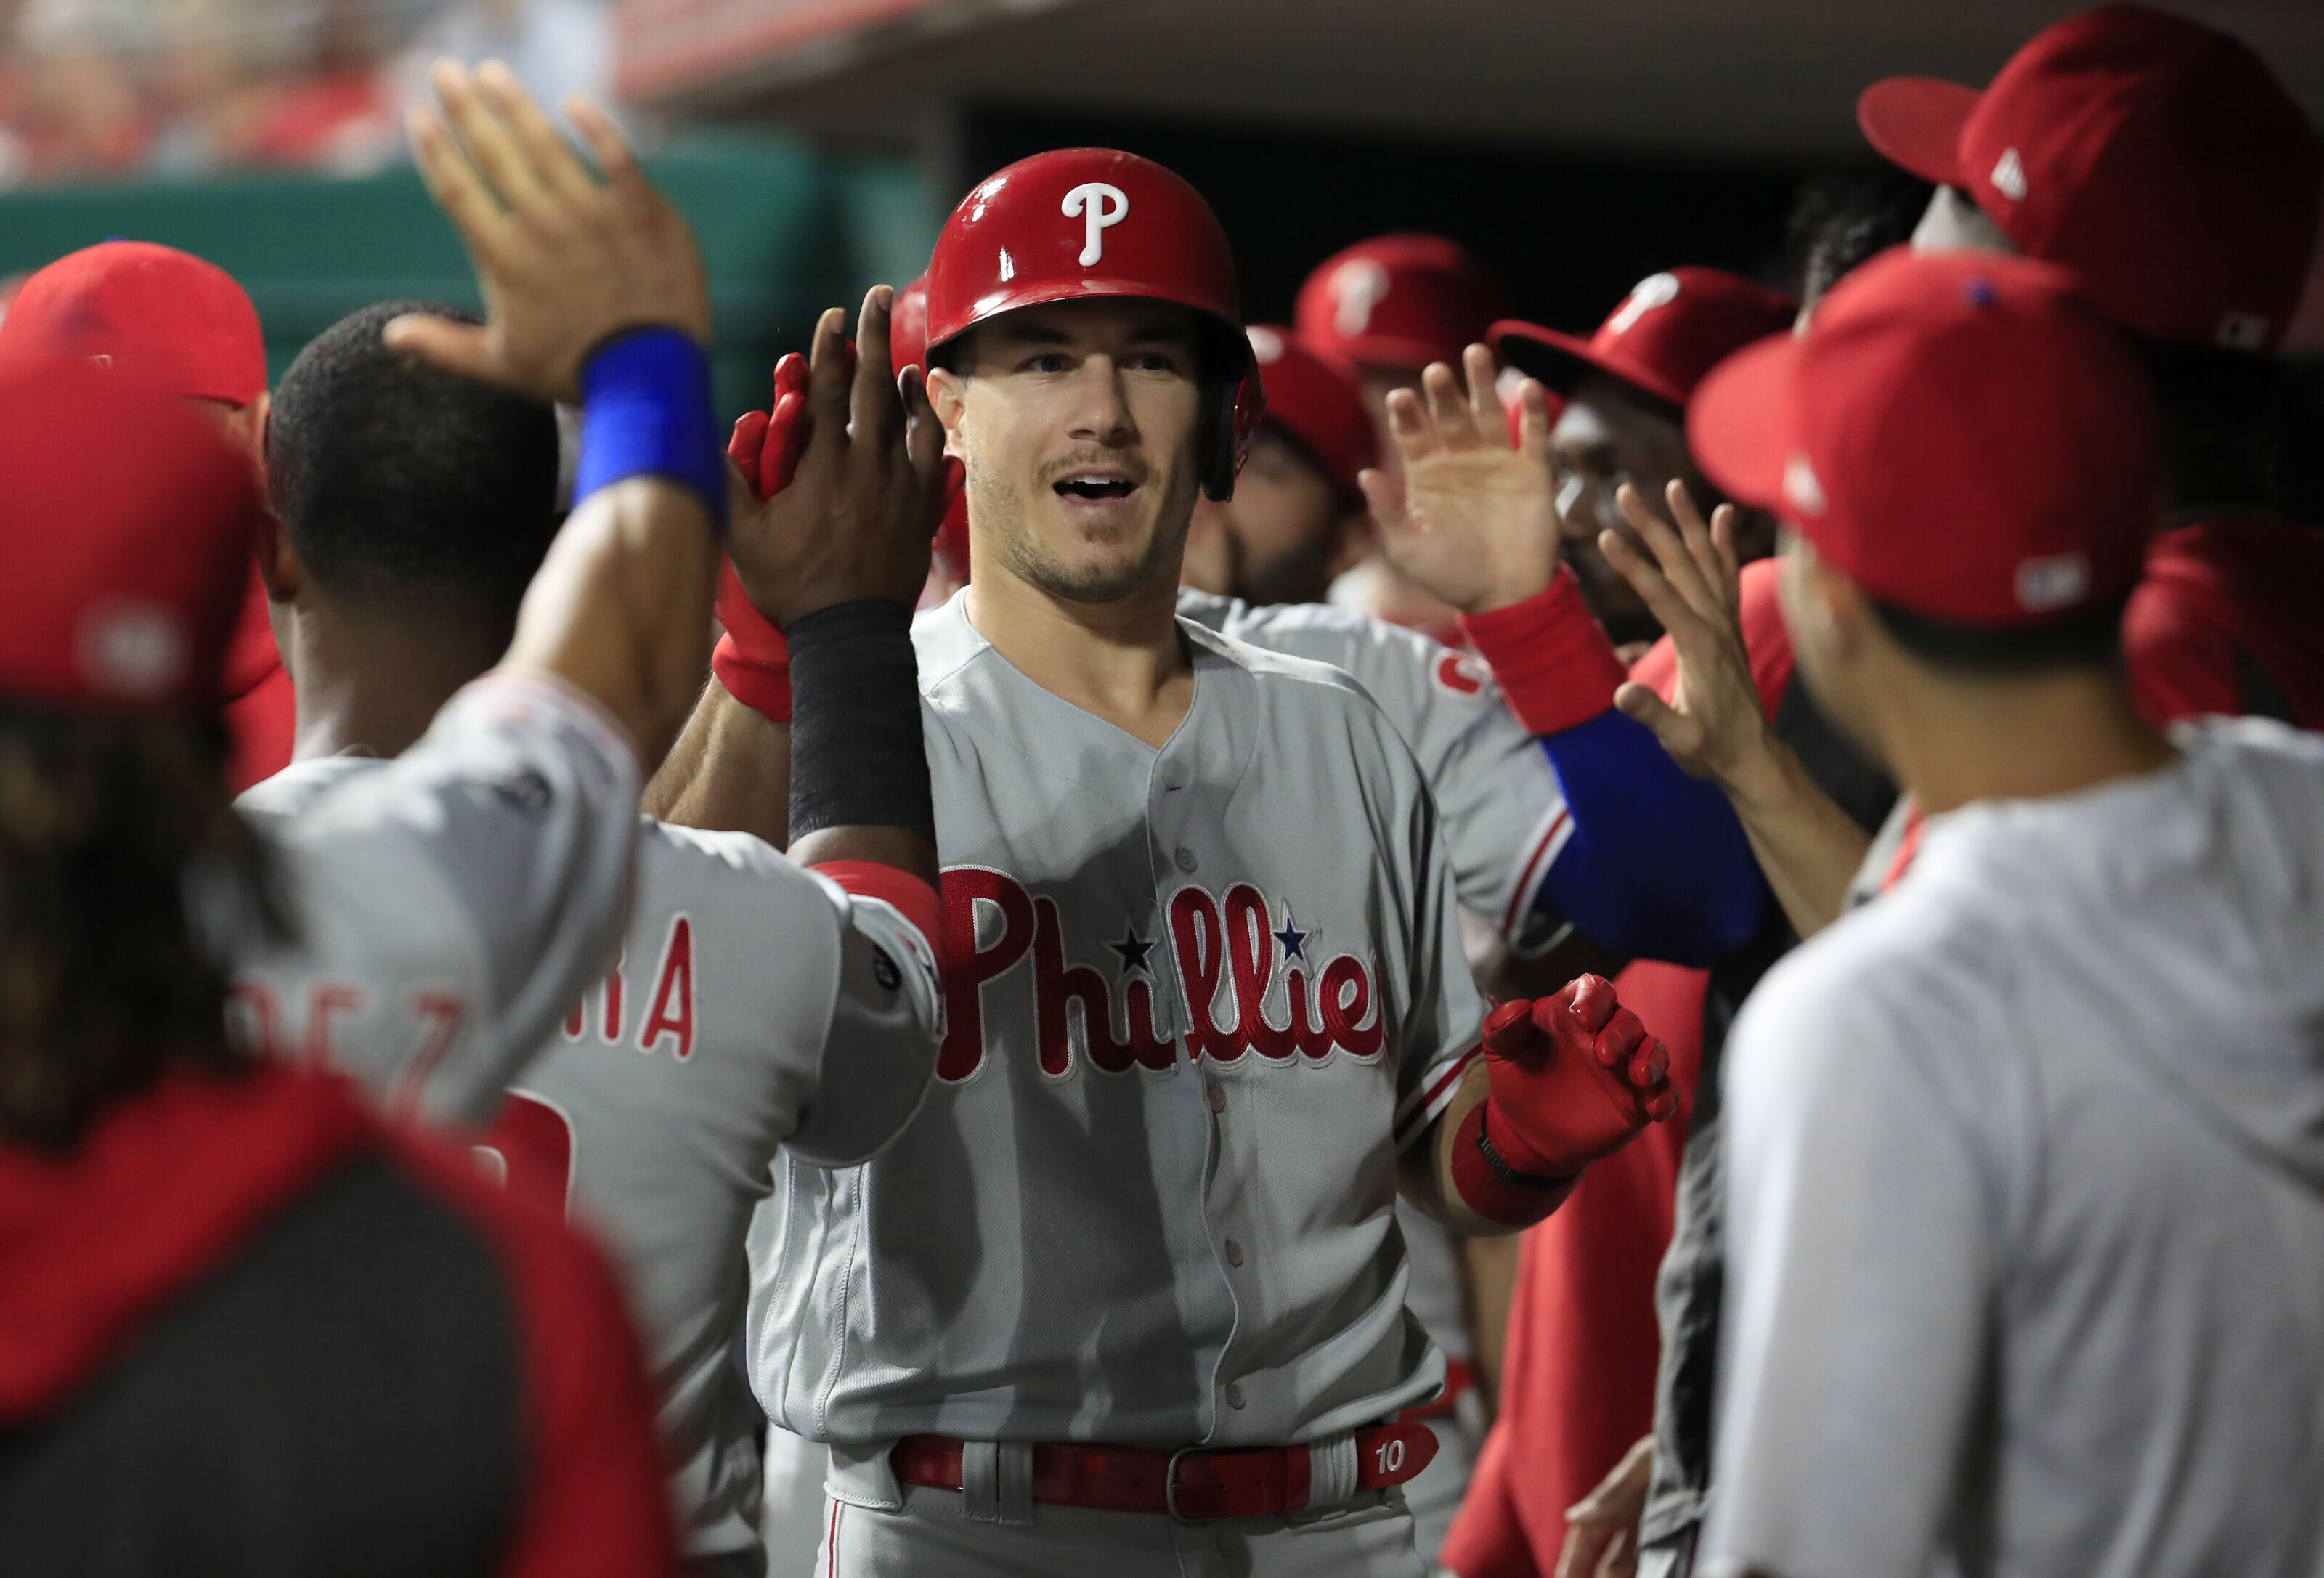 Phillies roster continues to expand, but how much will it help?